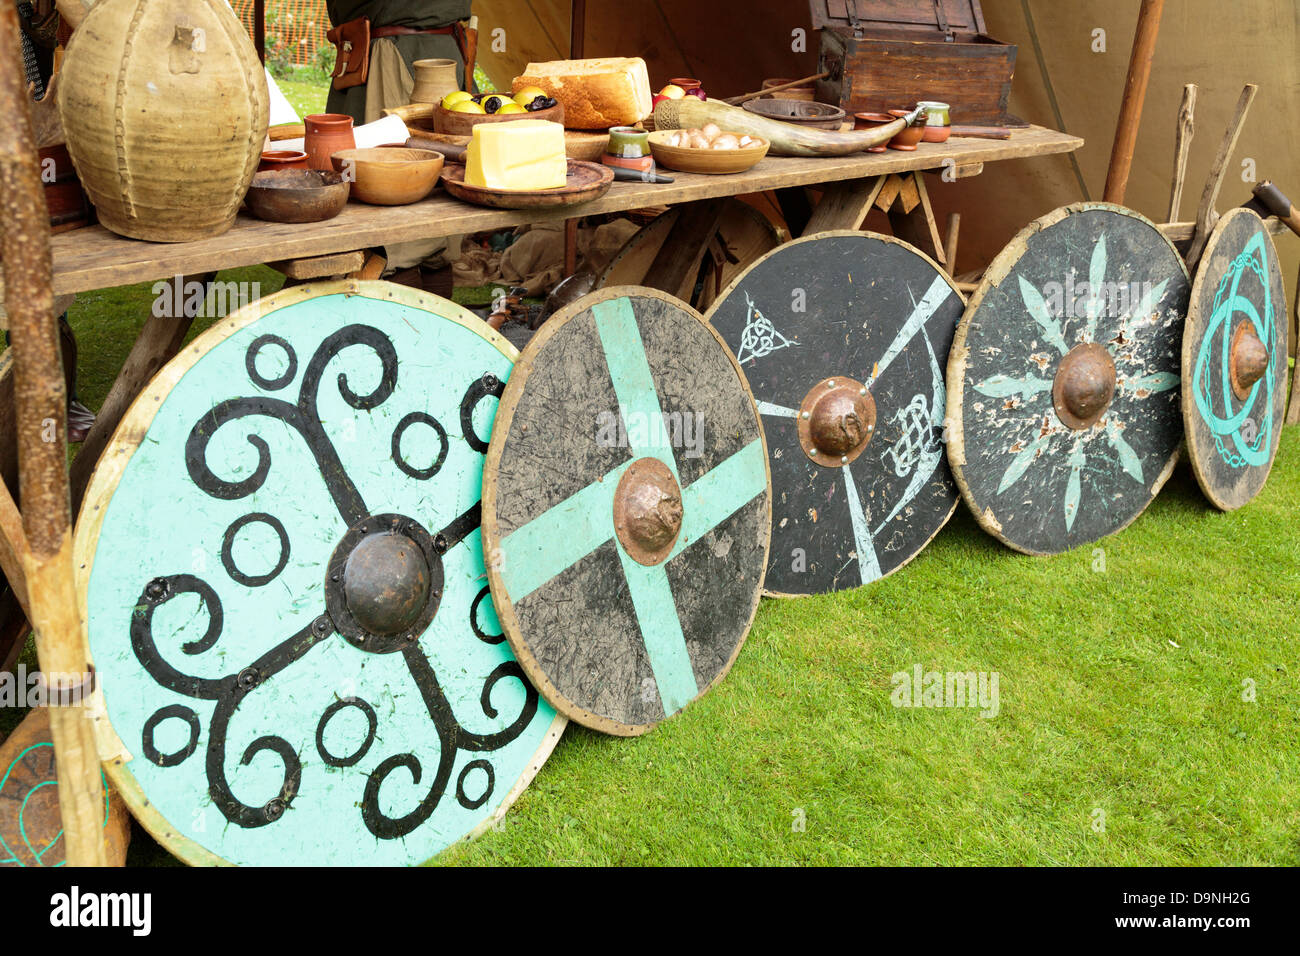 Reenactment of life in a Viking village, row of shields, Peterborough Heritage Festival 22 June 2013, England - Stock Image